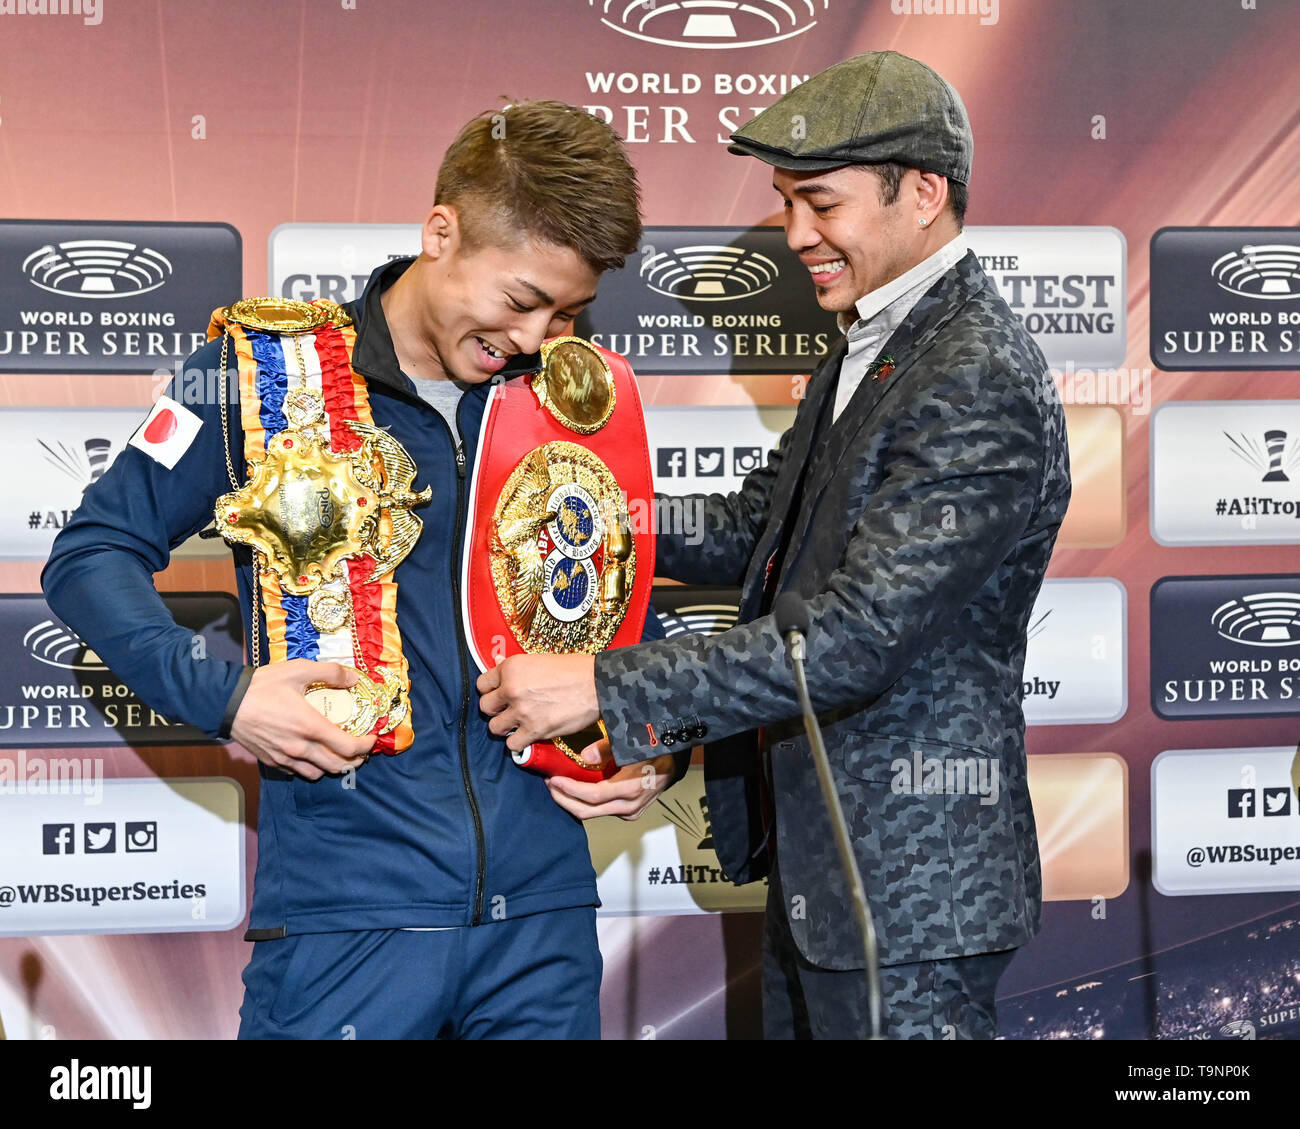 (L-R) Naoya Inoue (JPN), Nonito Donaire, MAY 18, 2019 - Boxing : Naoya Inoue of Japan talks with Nonito Donaire of Philippines, his opponent in the Finals, during a press conference after the IBF bantamweight title bout, Semi-finals of the World Boxing Super Series - Bantamweight tournament, at The SSE Hydro in Glasgow, Scotland. (Photo by Hiroaki Yamaguchi/AFLO) - Stock Image